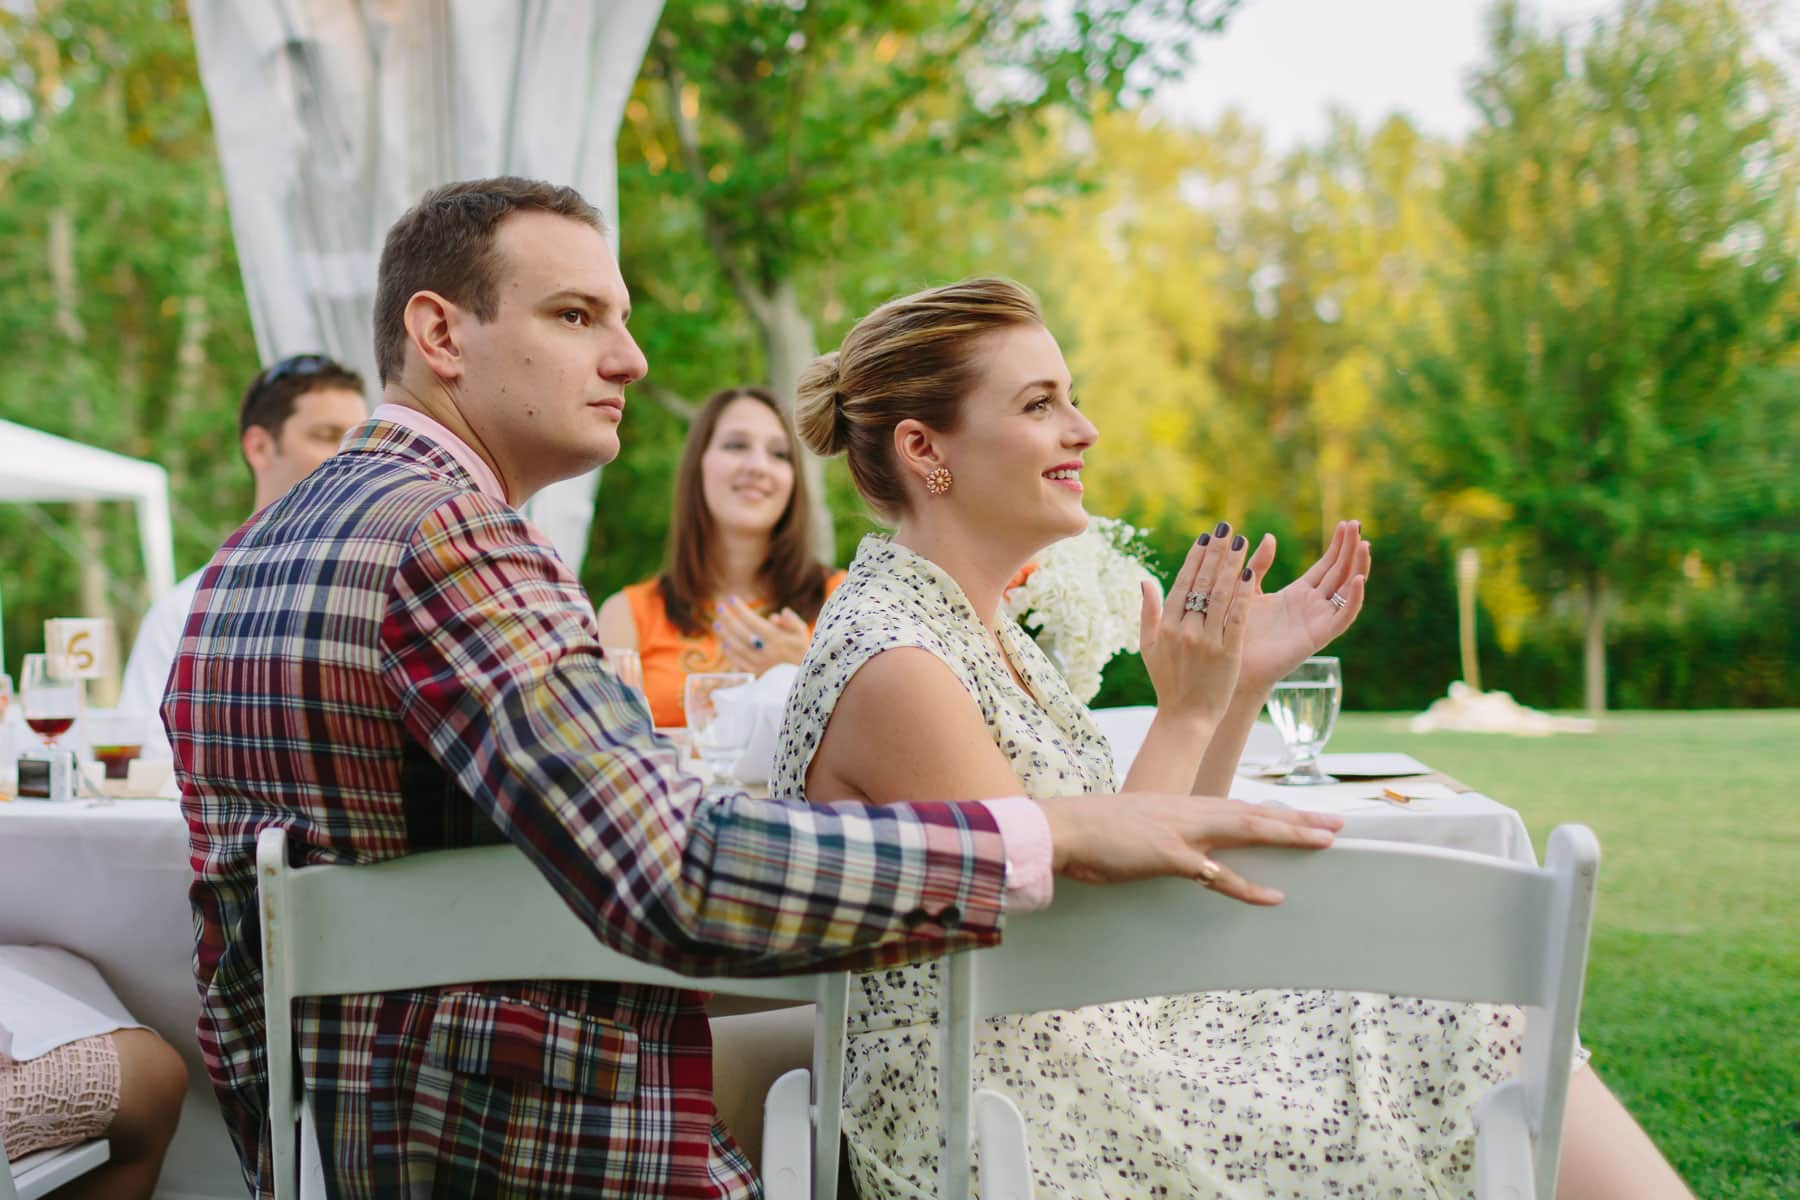 Two guests watch a speech and a woman claps in these backyard wedding photos.